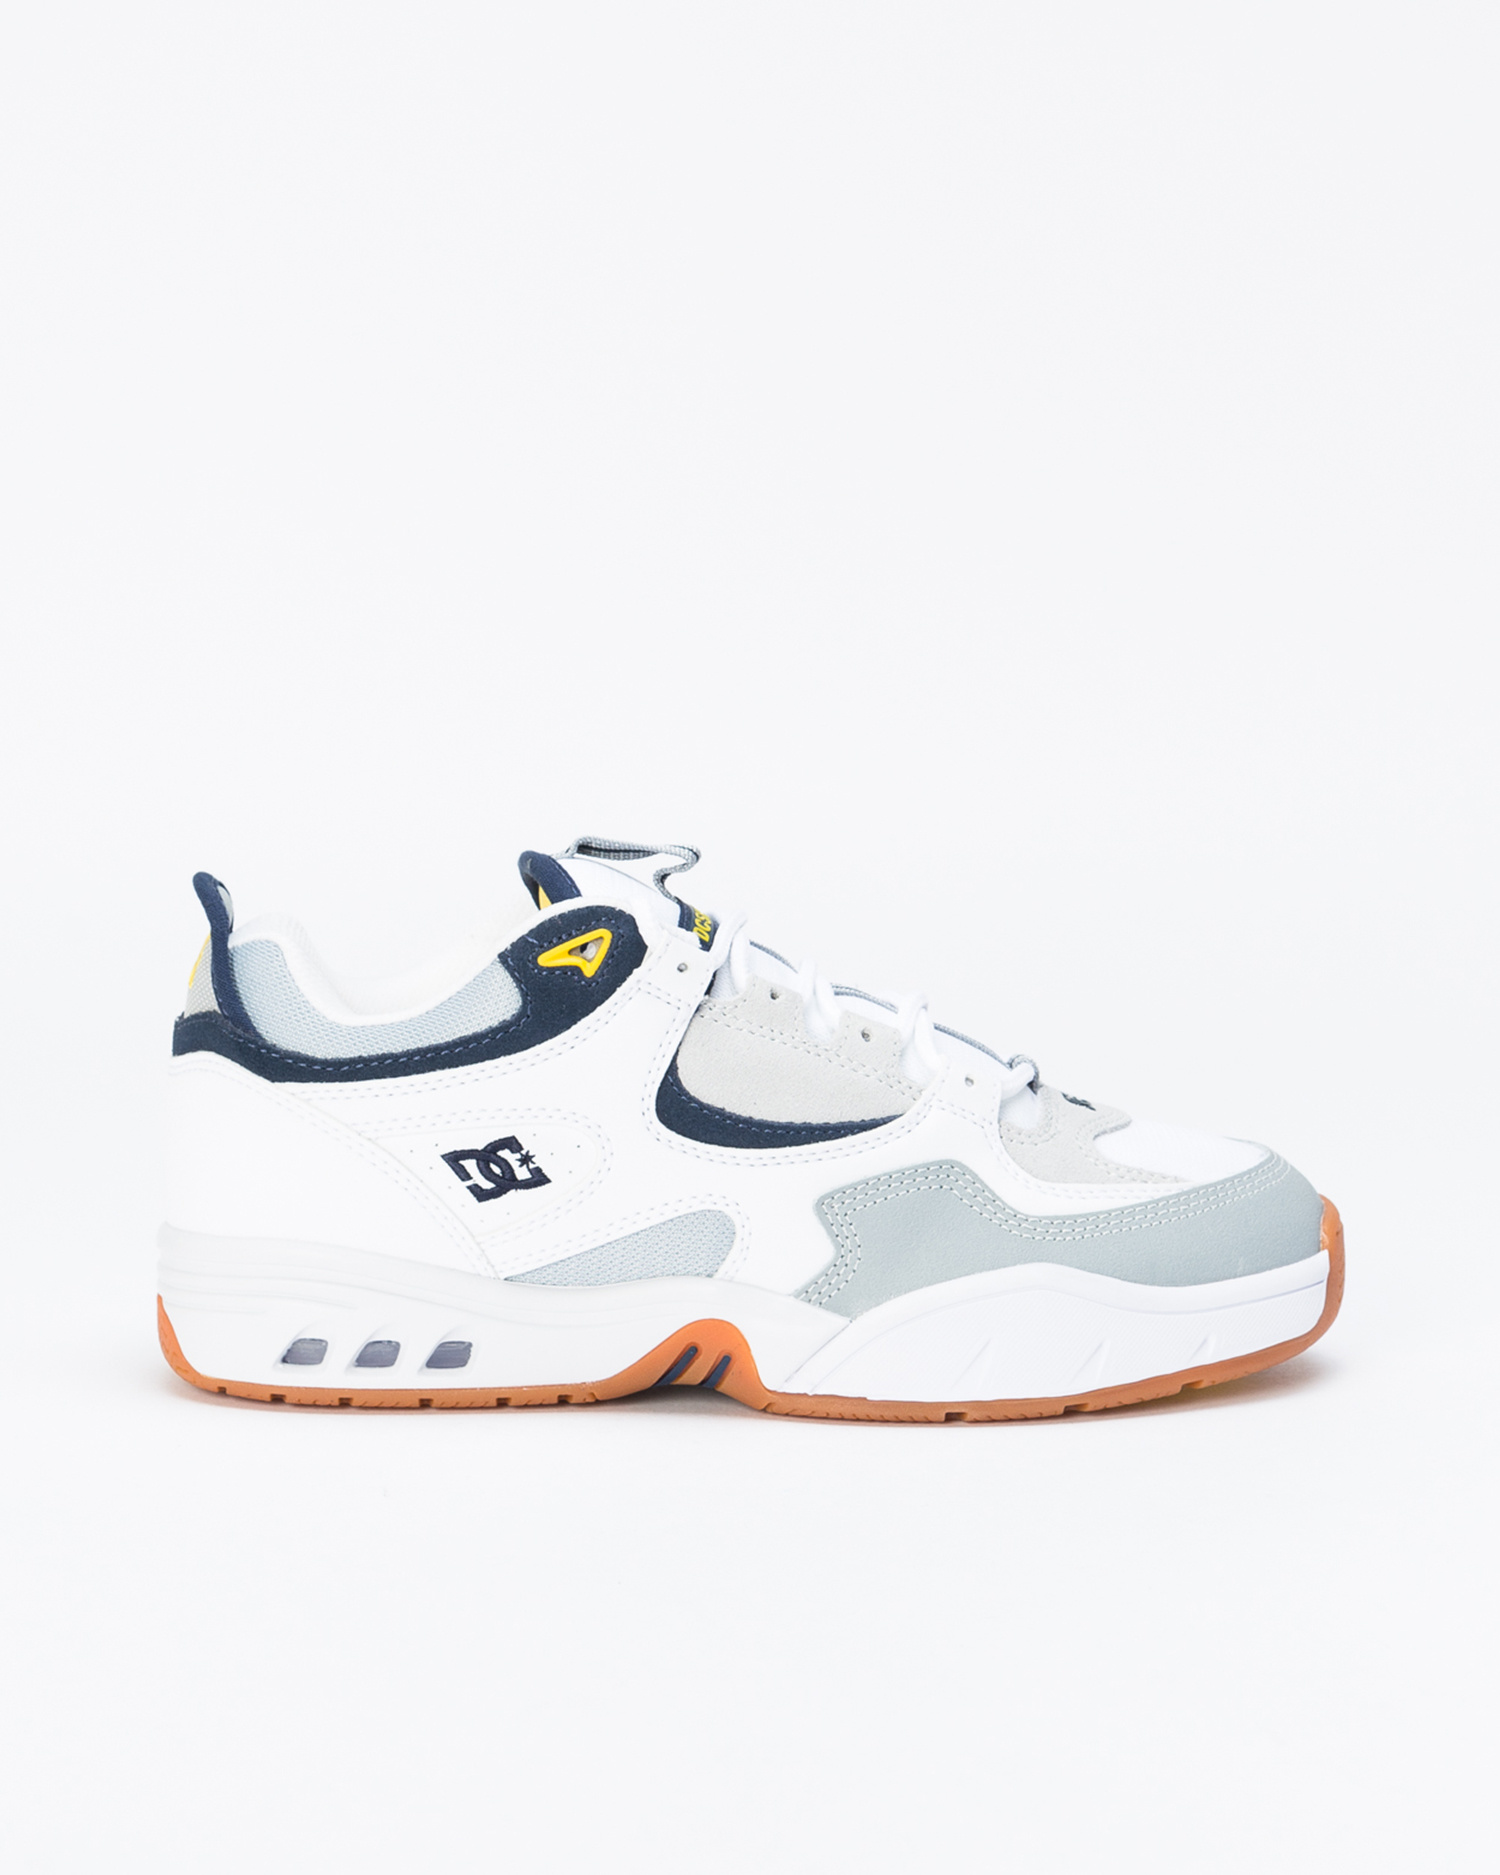 DC Kalis OG White/Grey/Yellow